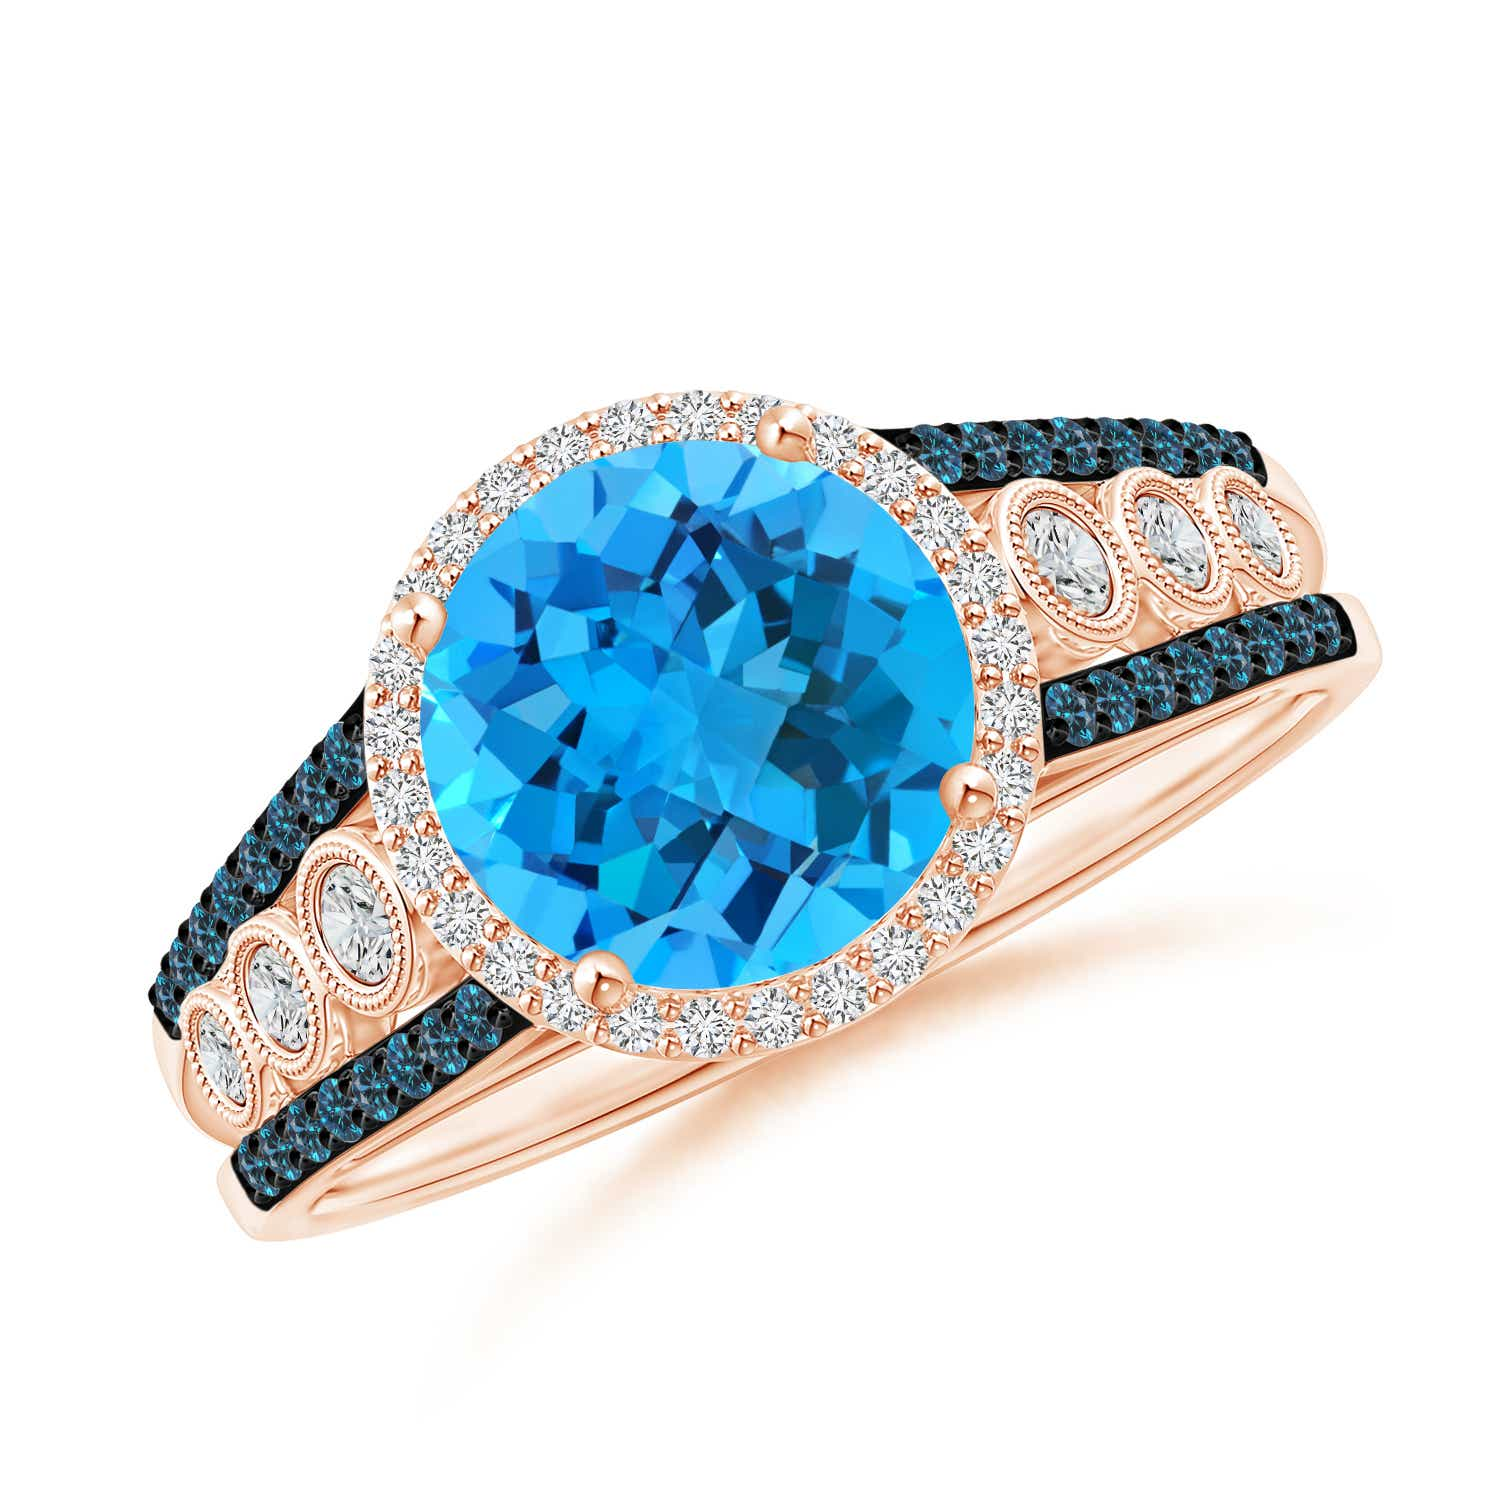 Round Swiss Blue Topaz Halo Regal Ring with Diamond Accents - Angara.com